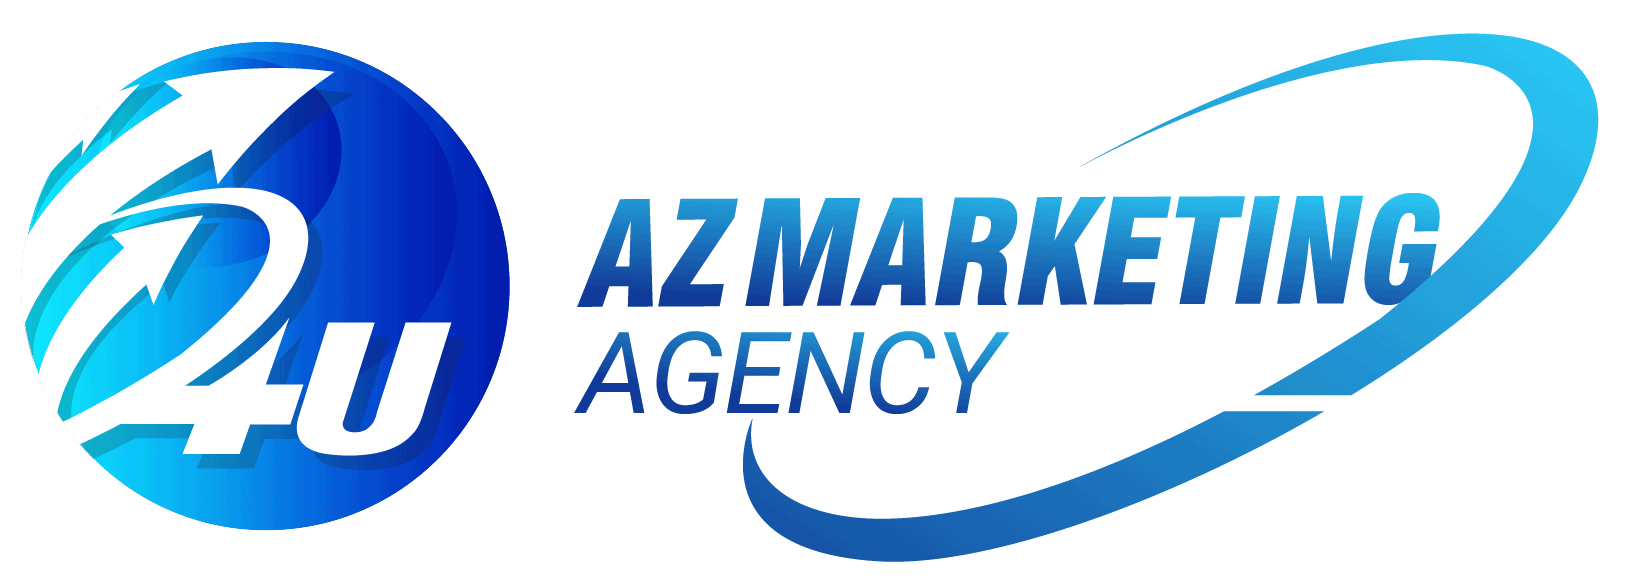 azmarketing4u-solution-for-small-local-business-with-low-cost